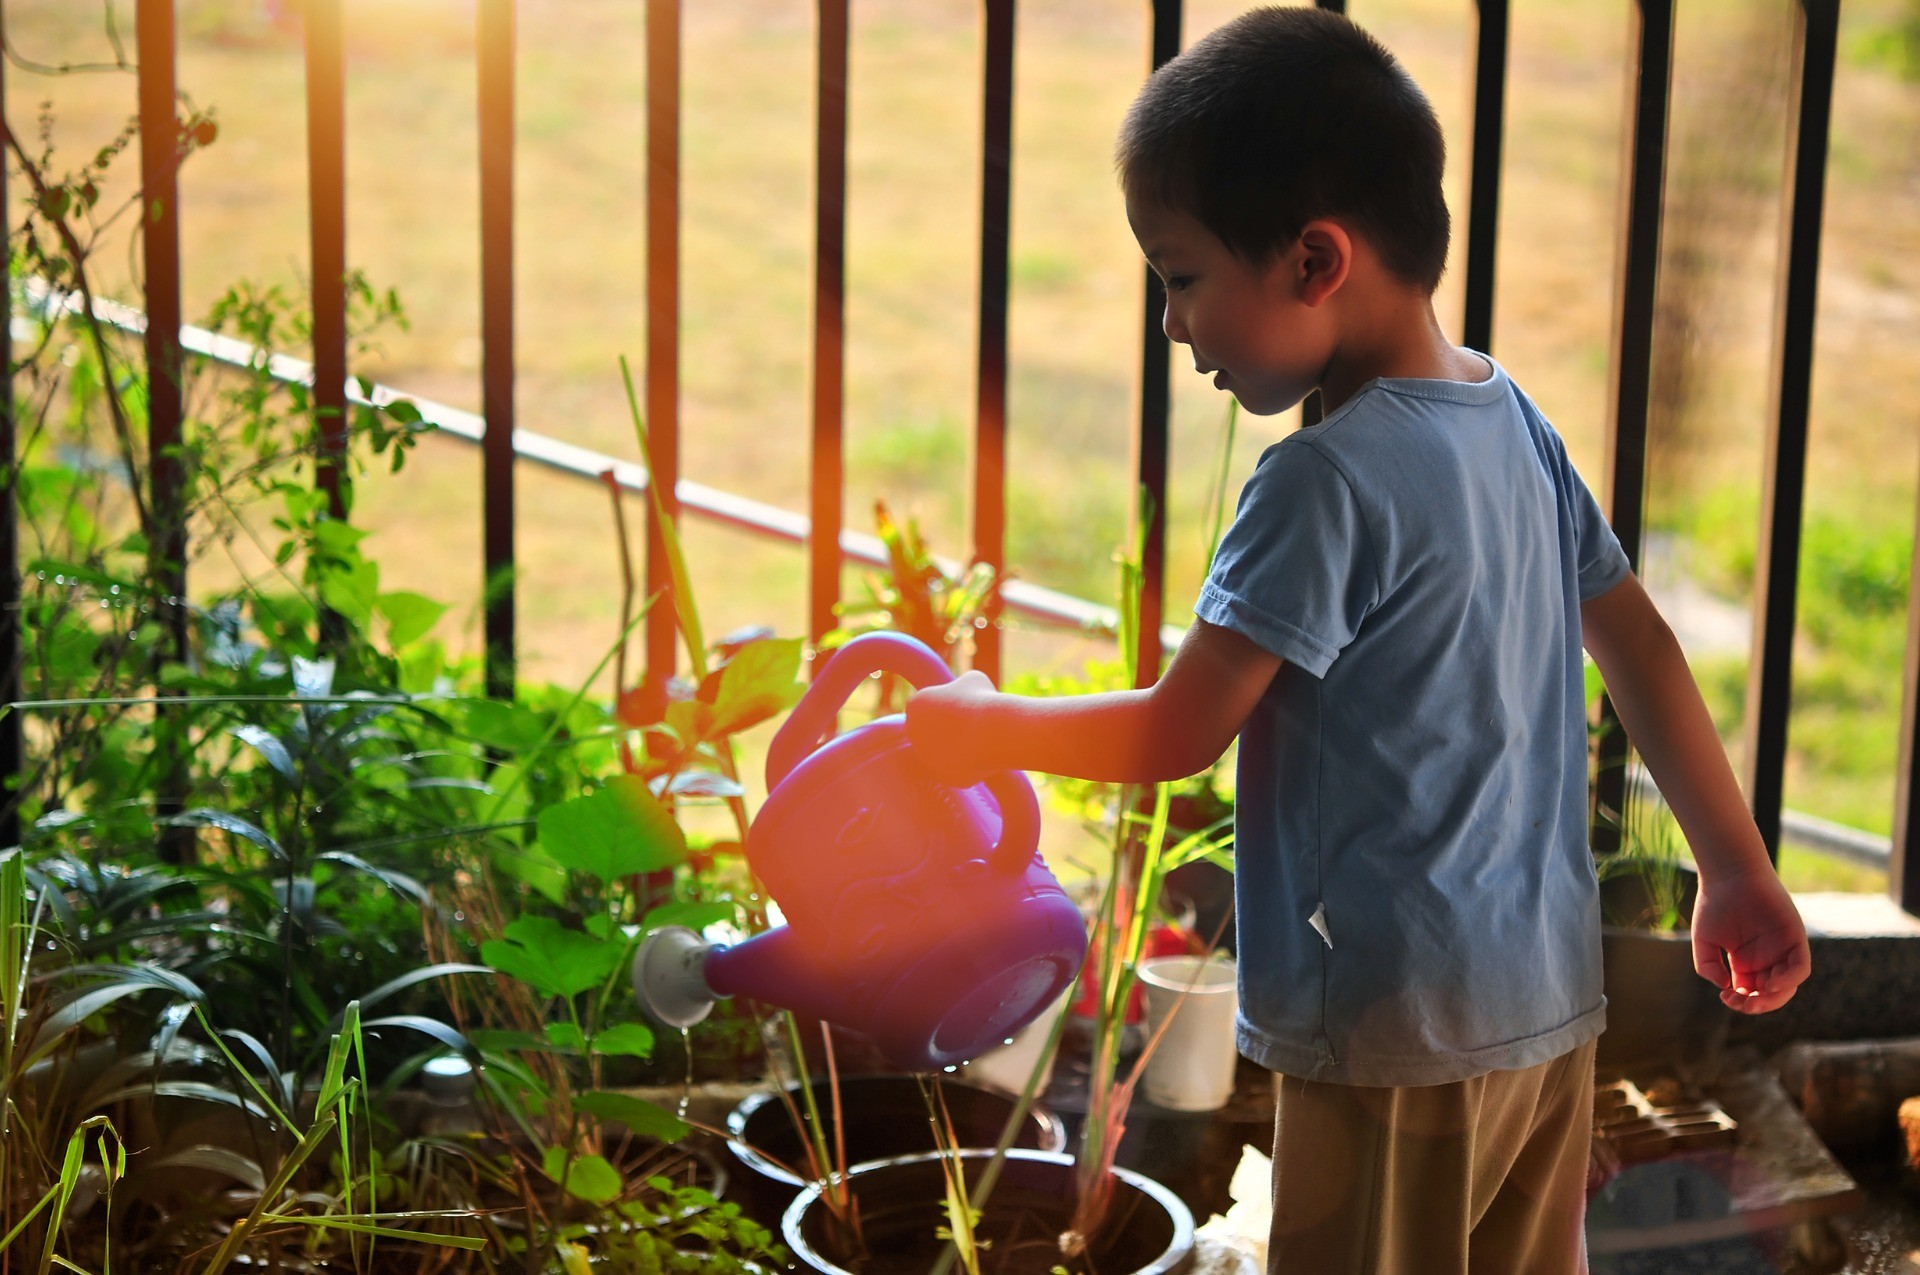 A boy watering potted plants with a watering can